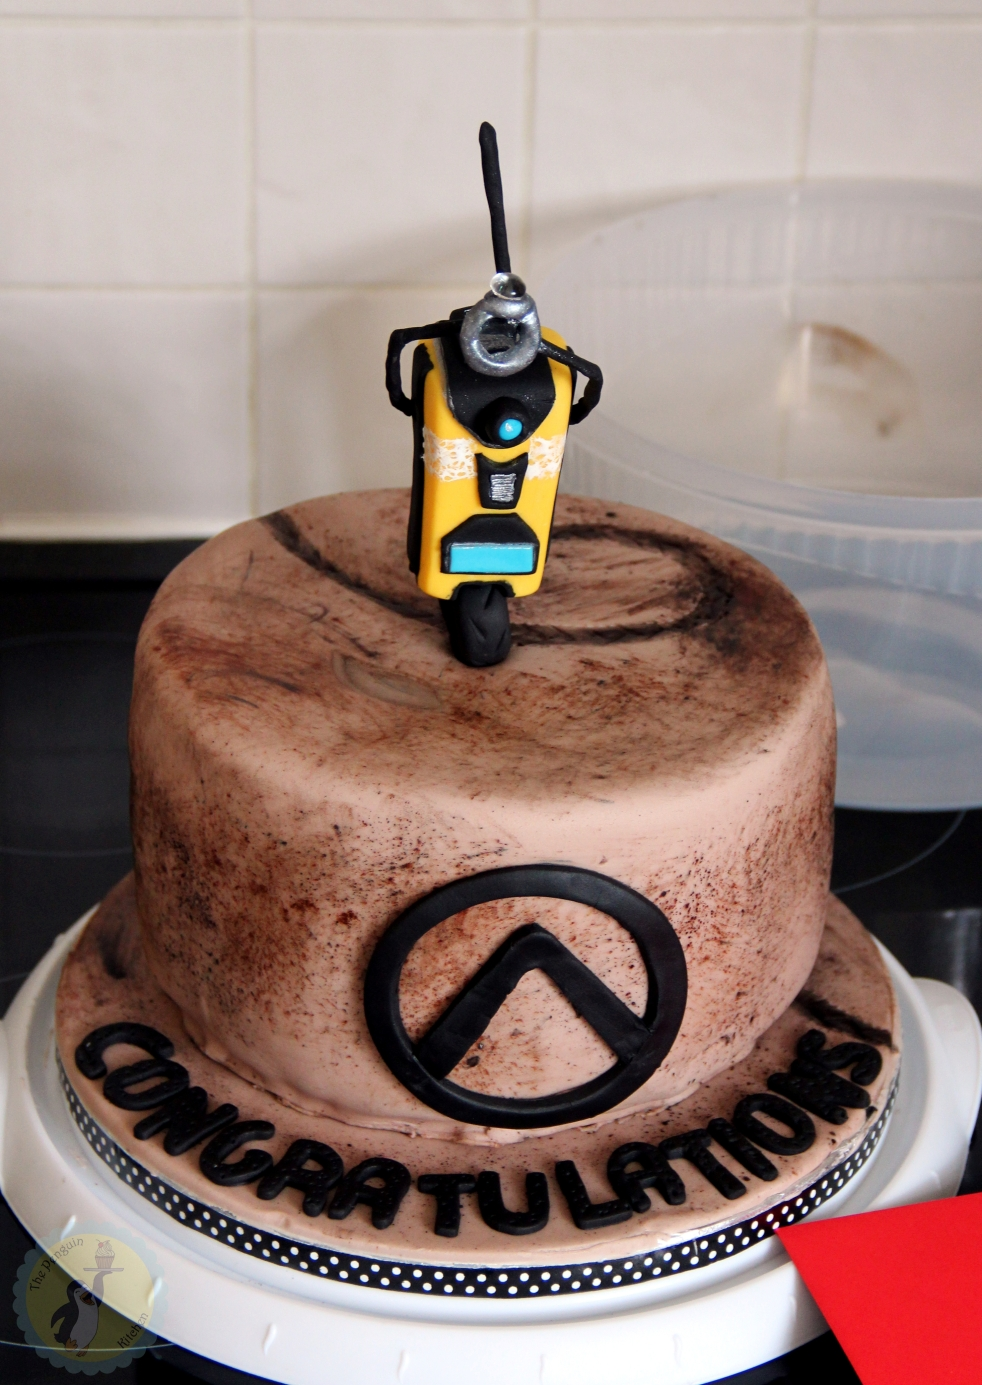 Borderlands themed engagement cake with Claptrap fondant cake topper